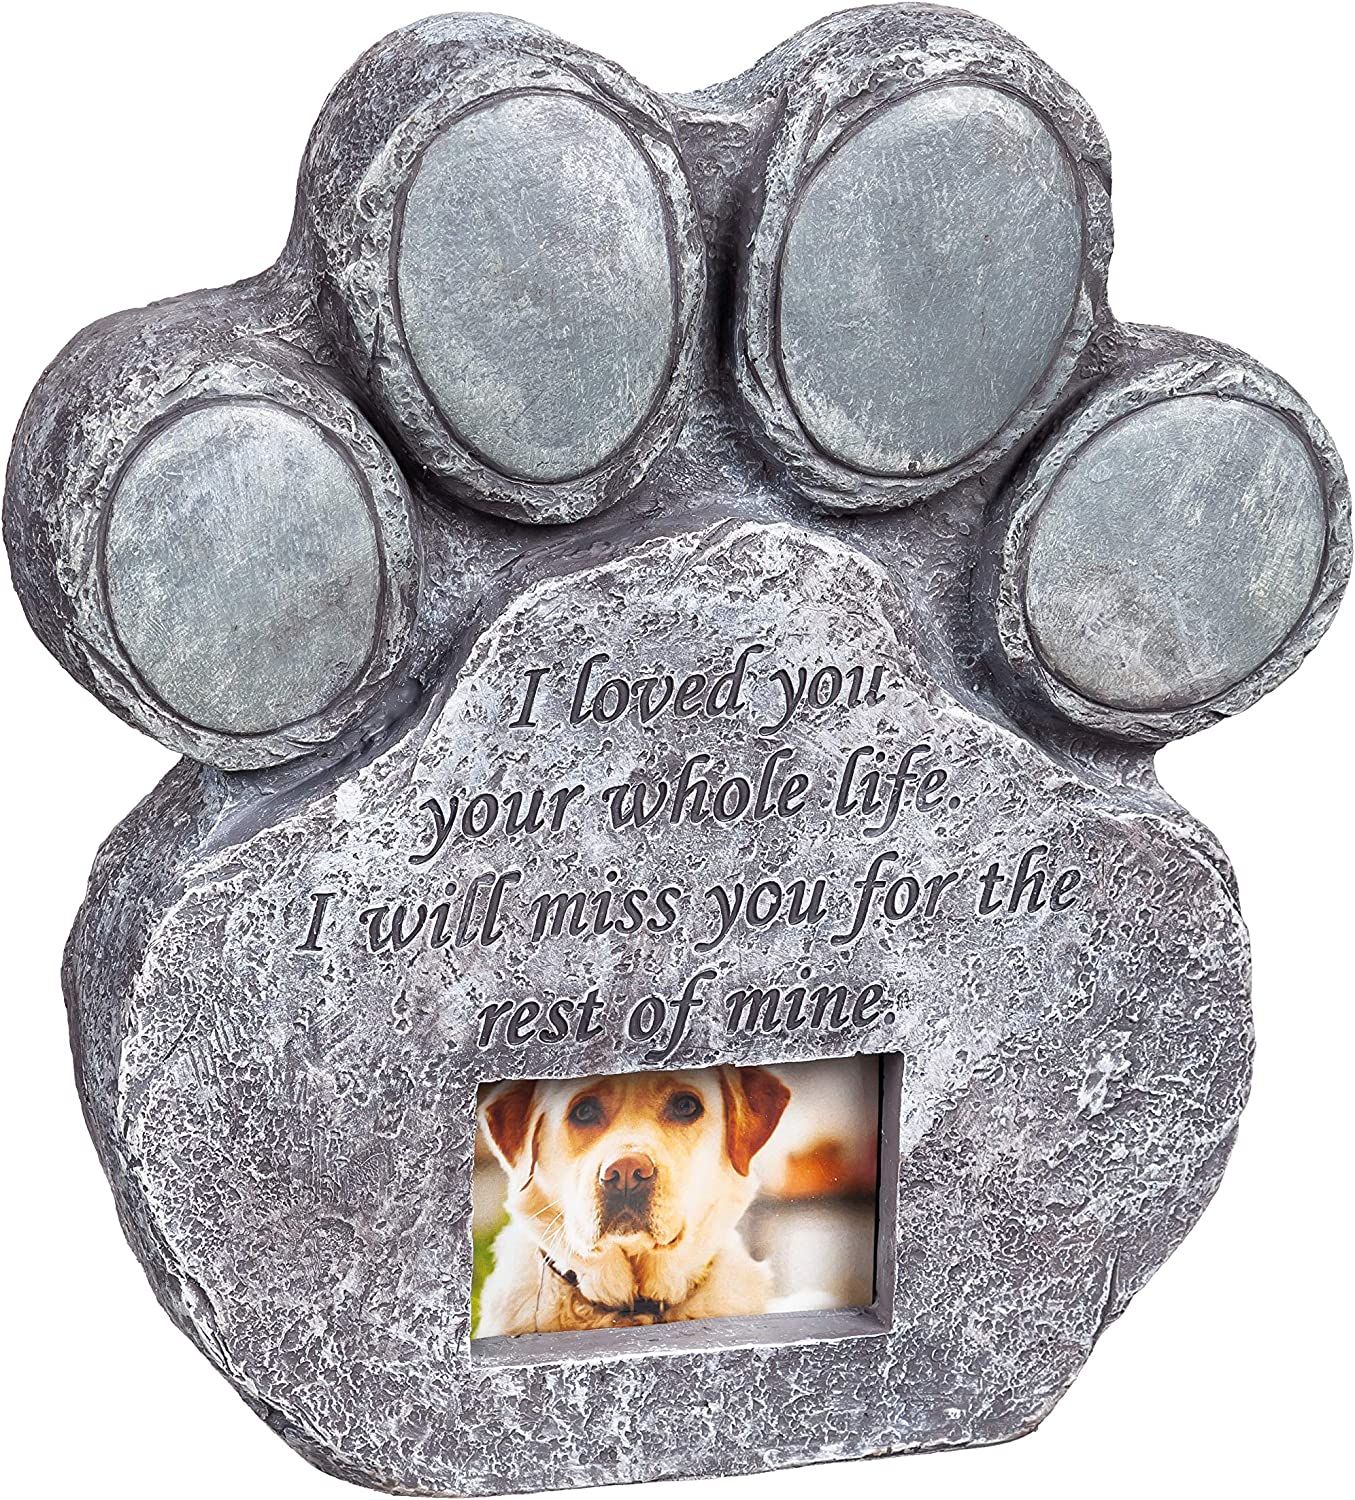 Evergreen Garden Make It Your Own Pet Memorial Stone and Photo Frame - 10 x 2 x 9 Inches Fade and Weather Resistant Indoor Outdoor Statuary for Homes, Yards, and Gardens